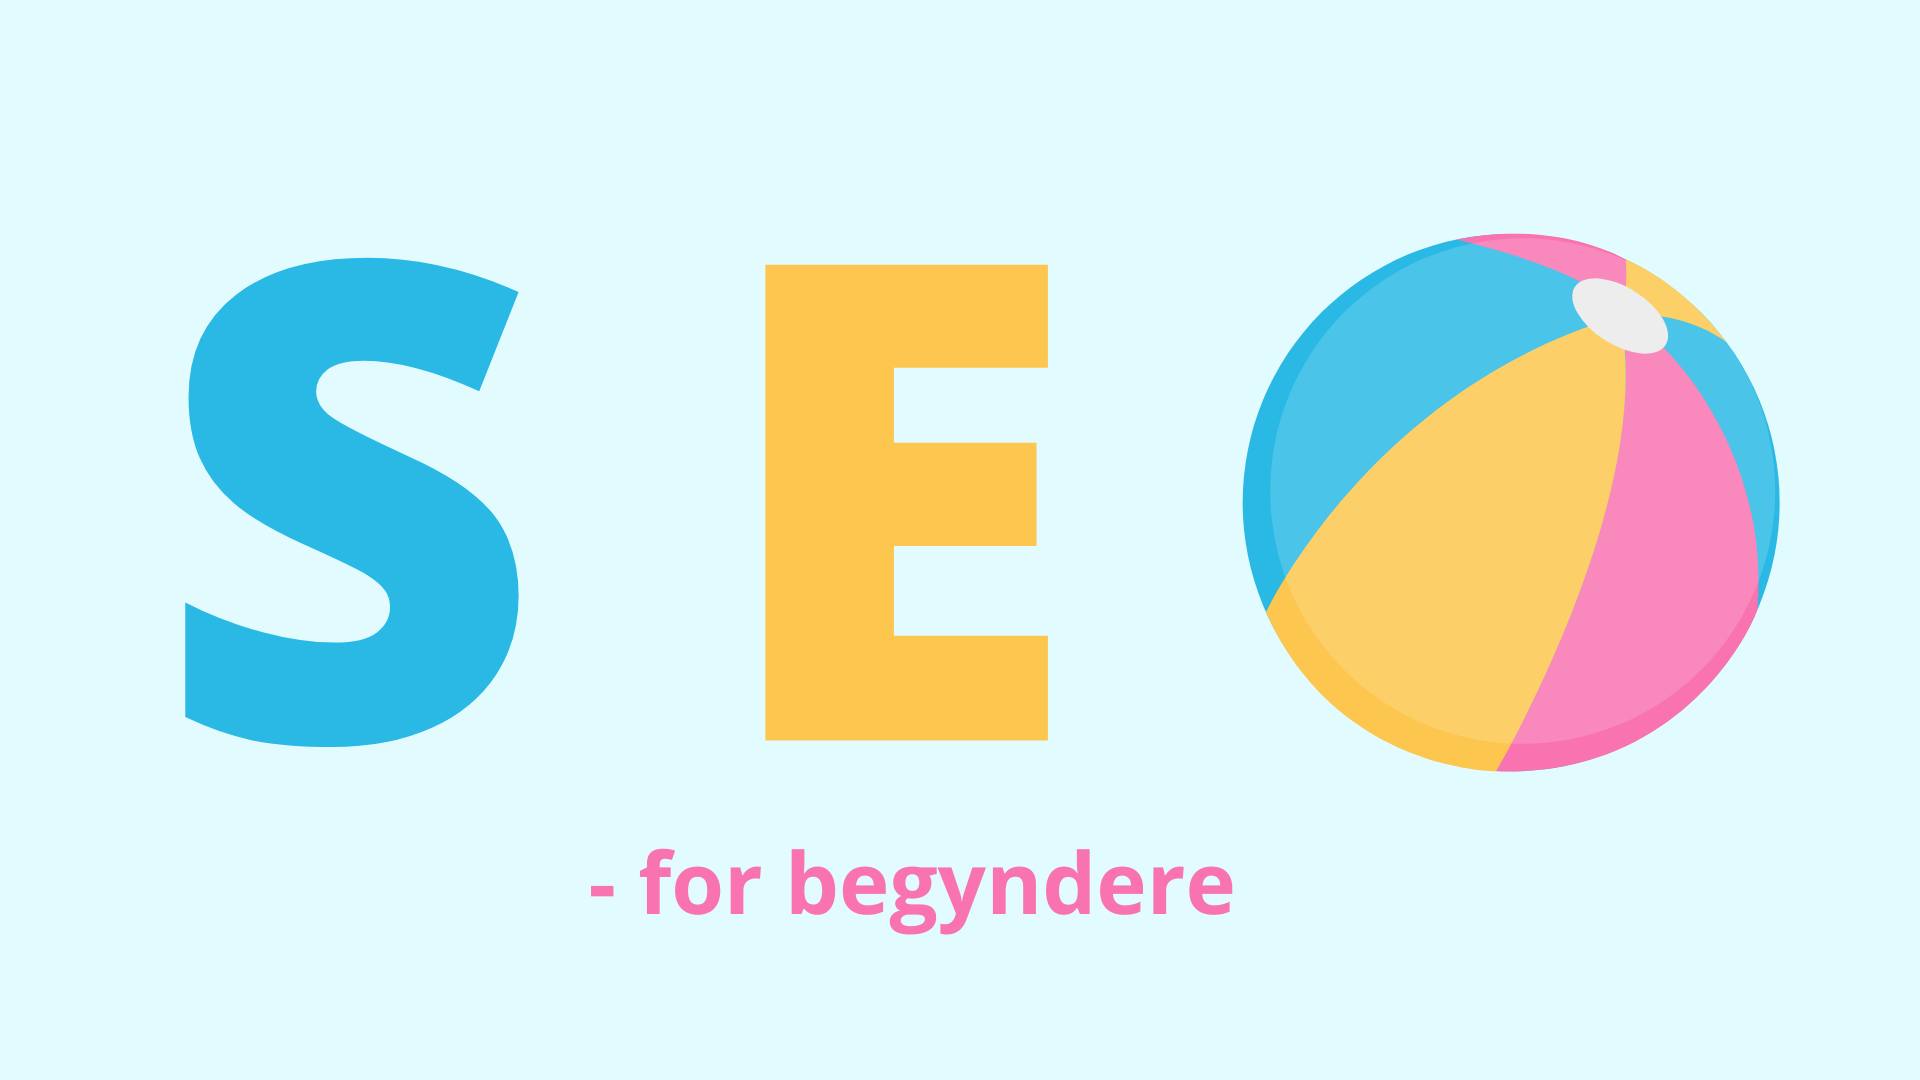 SEO for begyndere